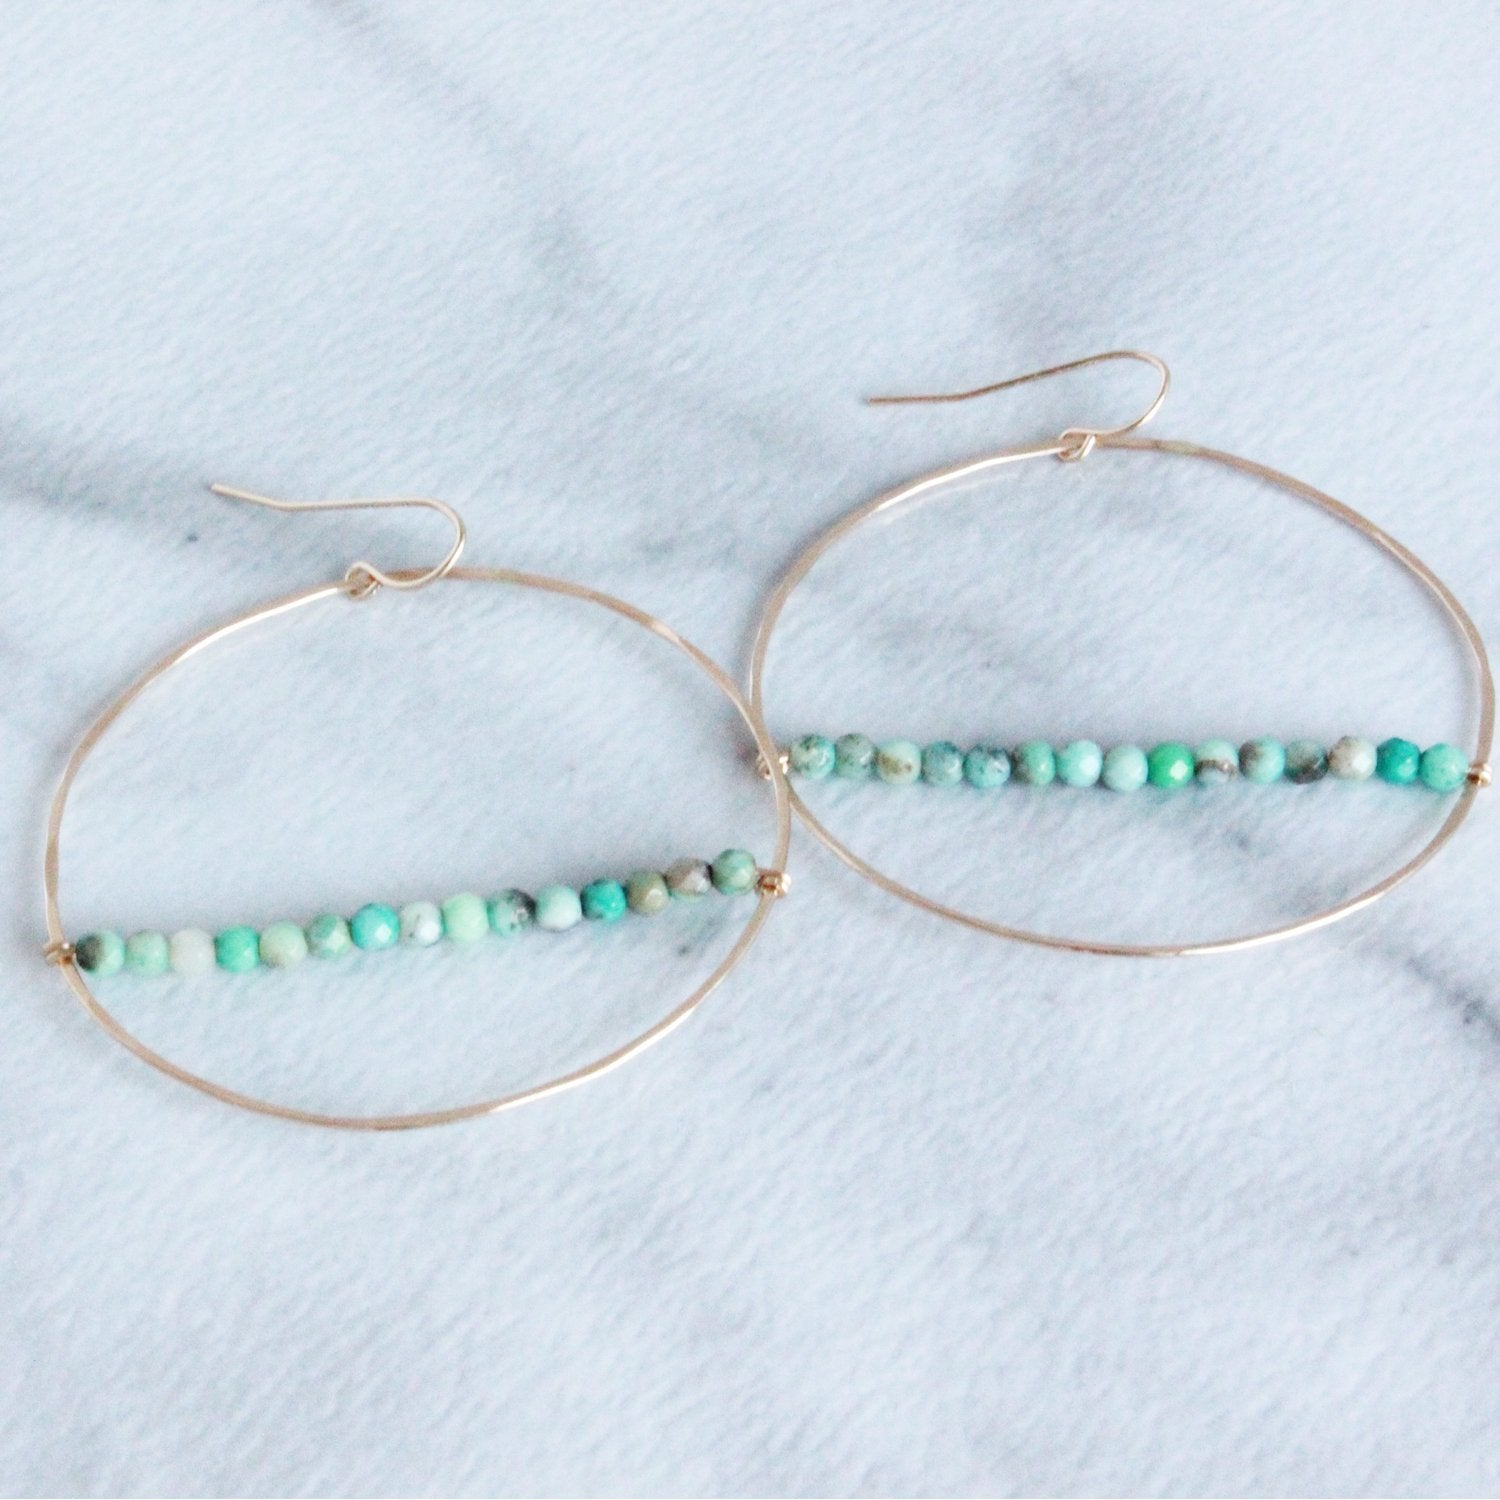 The Large Hoop with Beads Wholesale